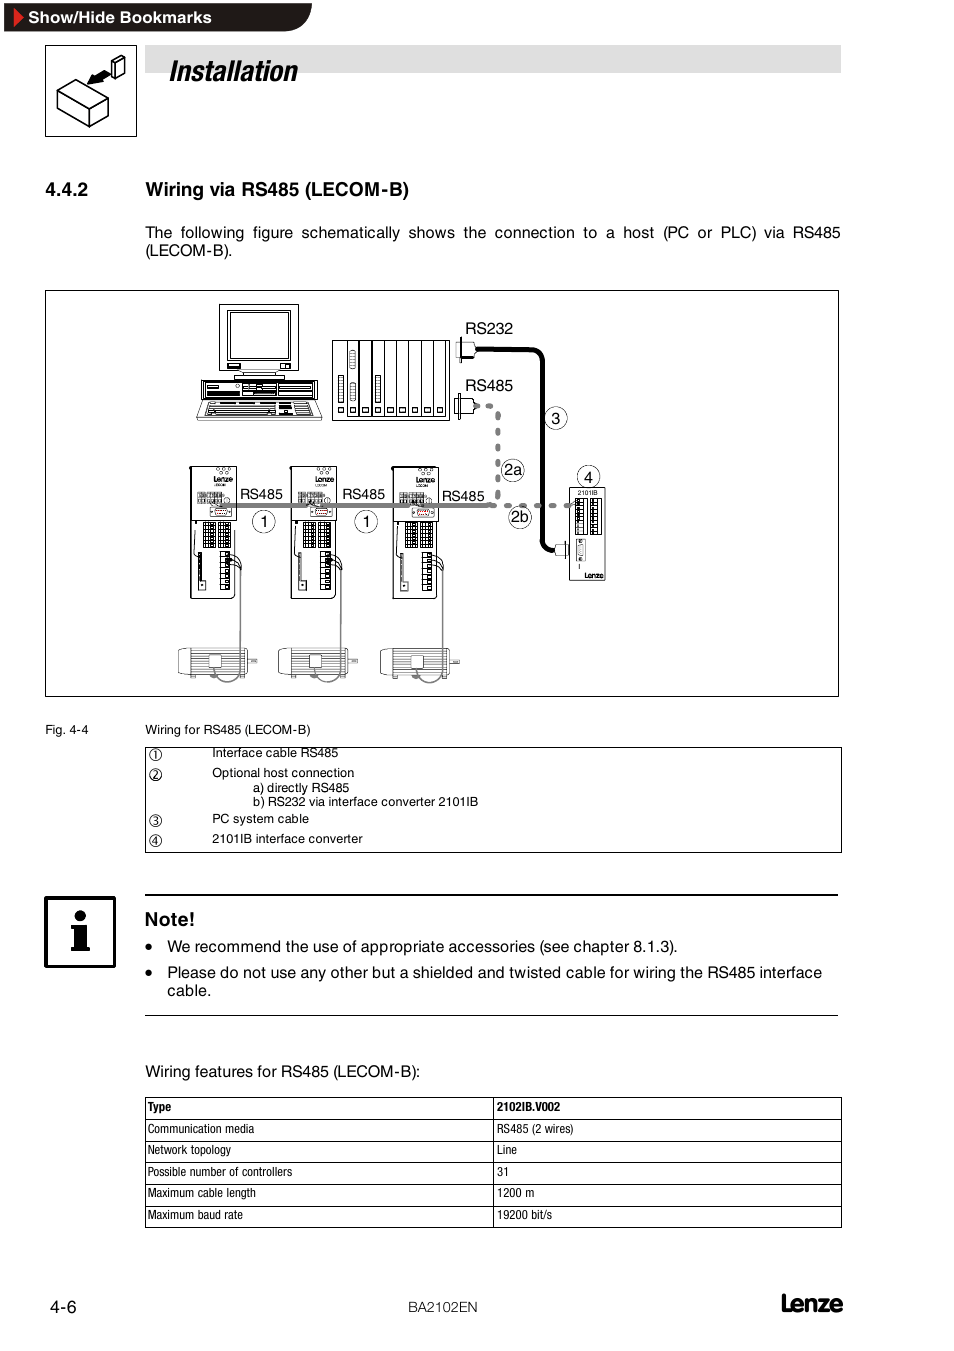 hight resolution of 2 wiring via rs485 lecom b wiring via rs485 lecom b installation lenze emf2102ib user manual page 18 62